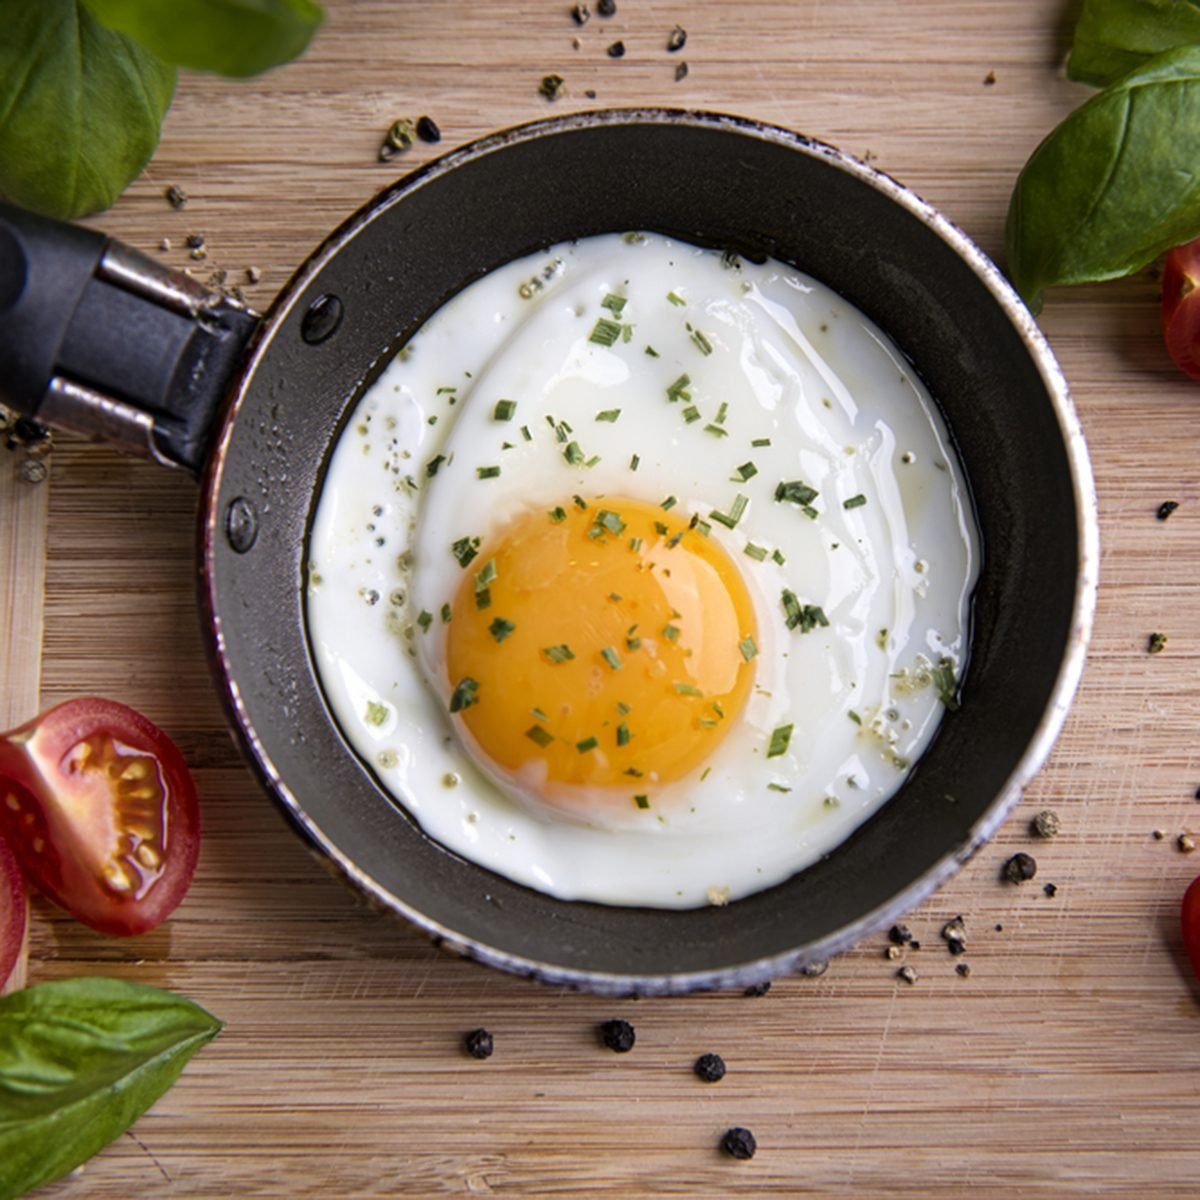 freshly made, delicious meal of eggs and vegetables; Shutterstock ID 344915381; Job (TFH, TOH, RD, BNB, CWM, CM): TOH